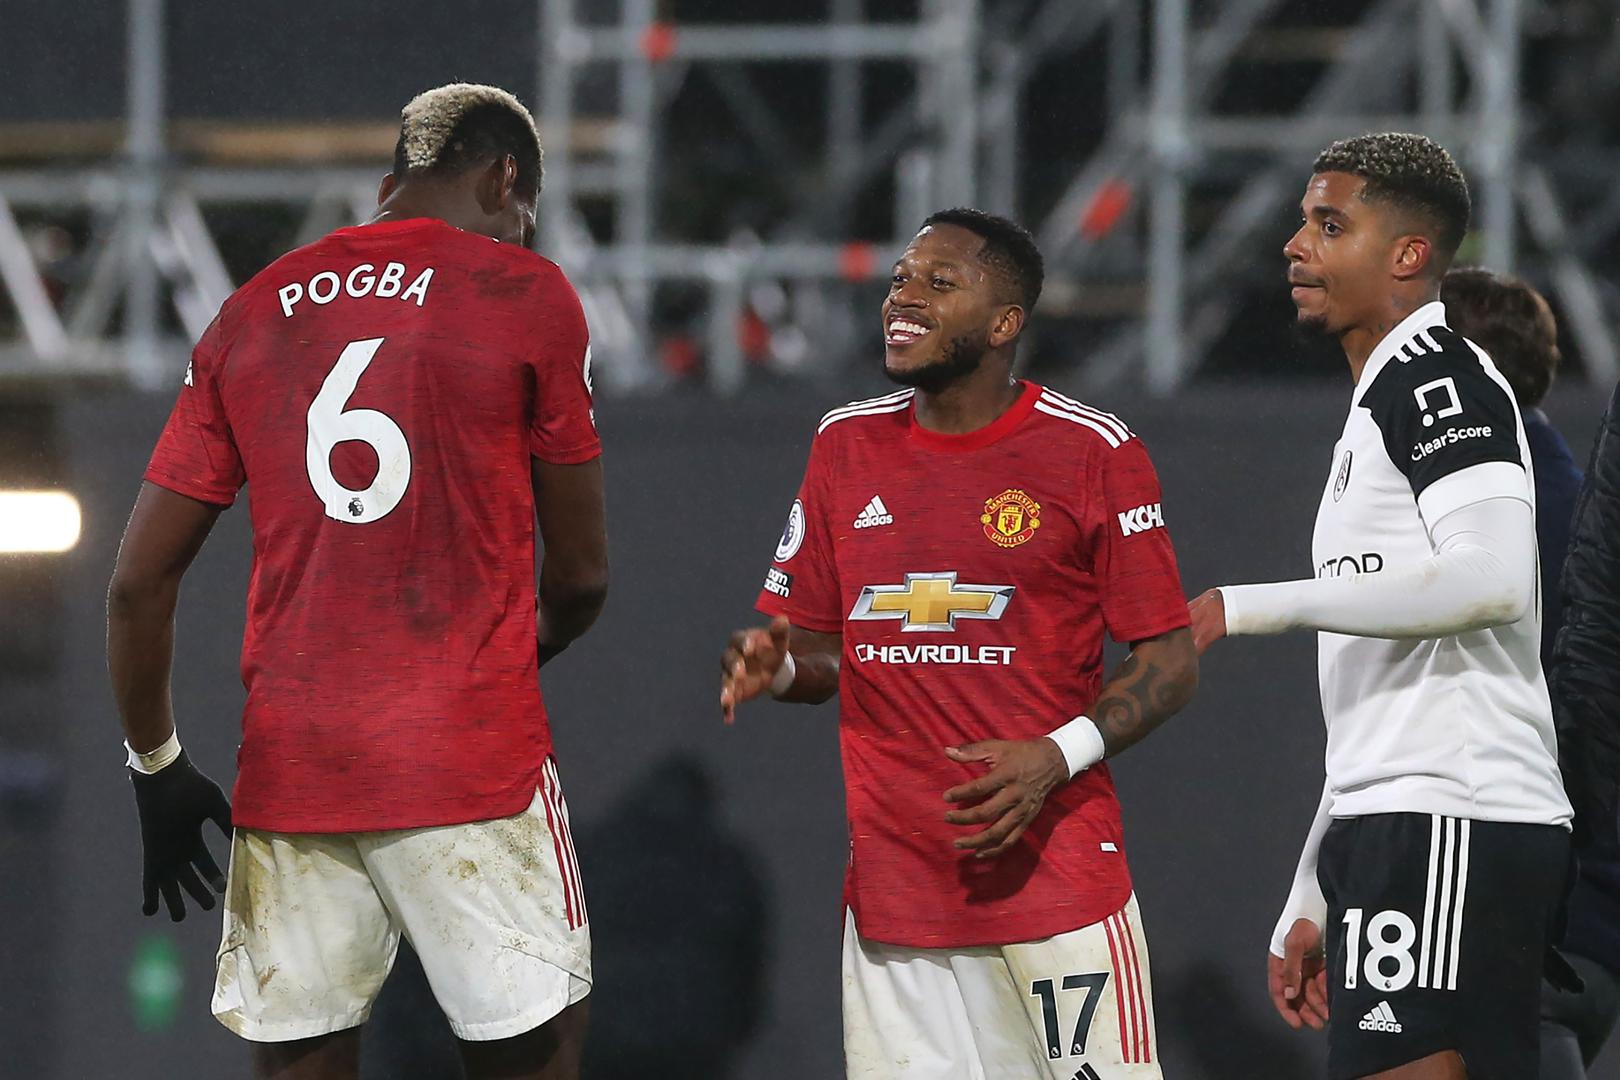 Paul Pogba and Fred celebrate at Fulham